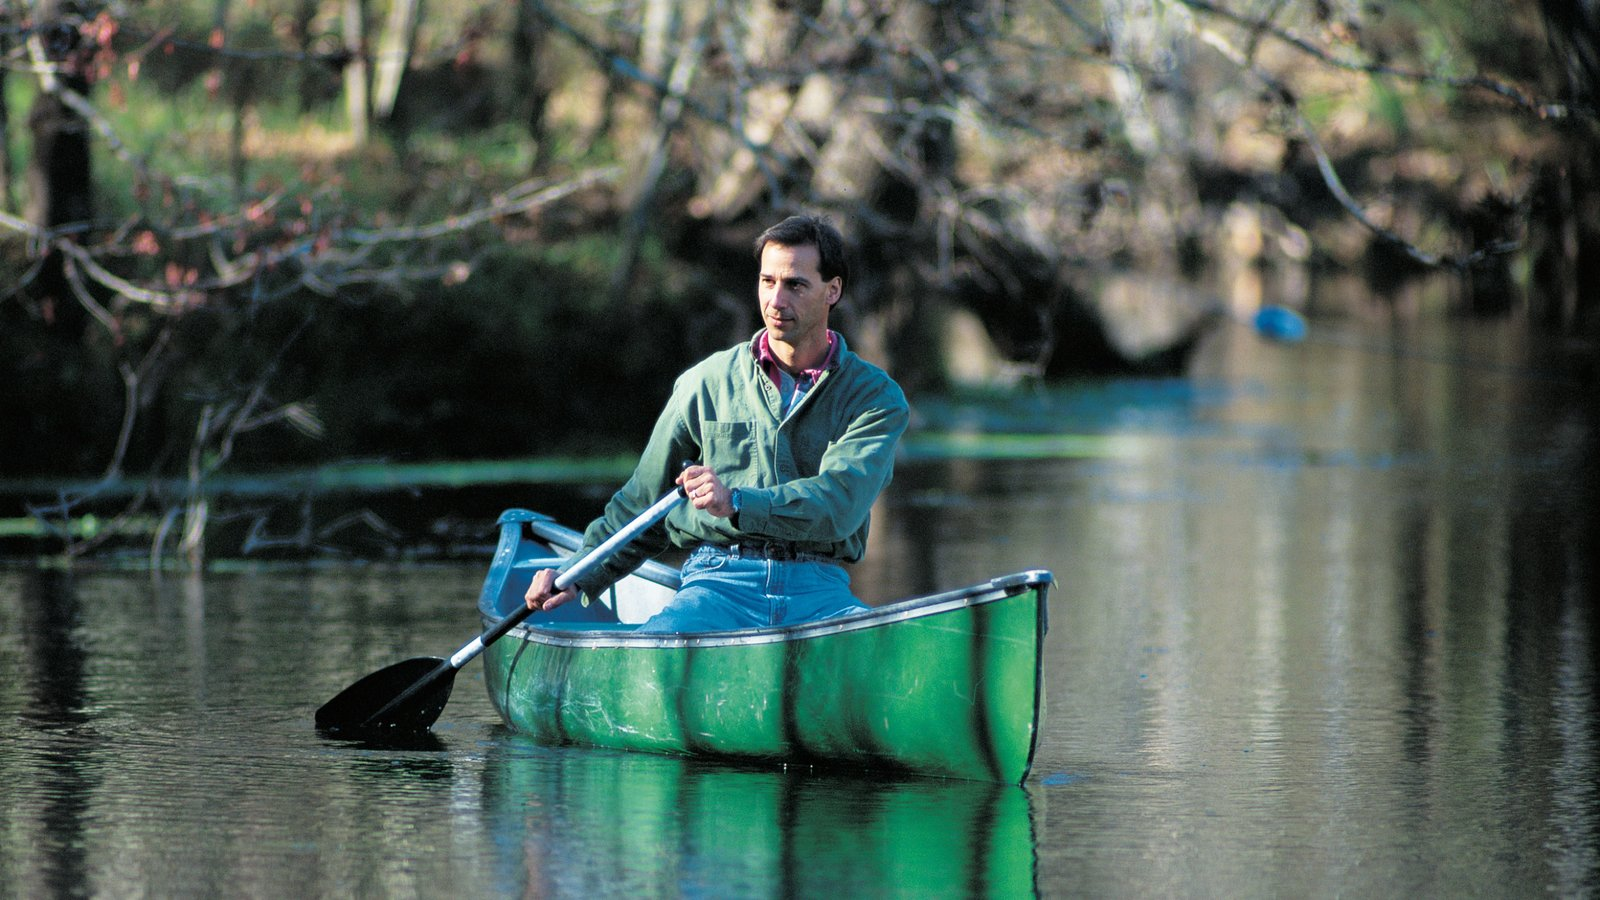 Gainesville which includes a river or creek and kayaking or canoeing as well as an individual male